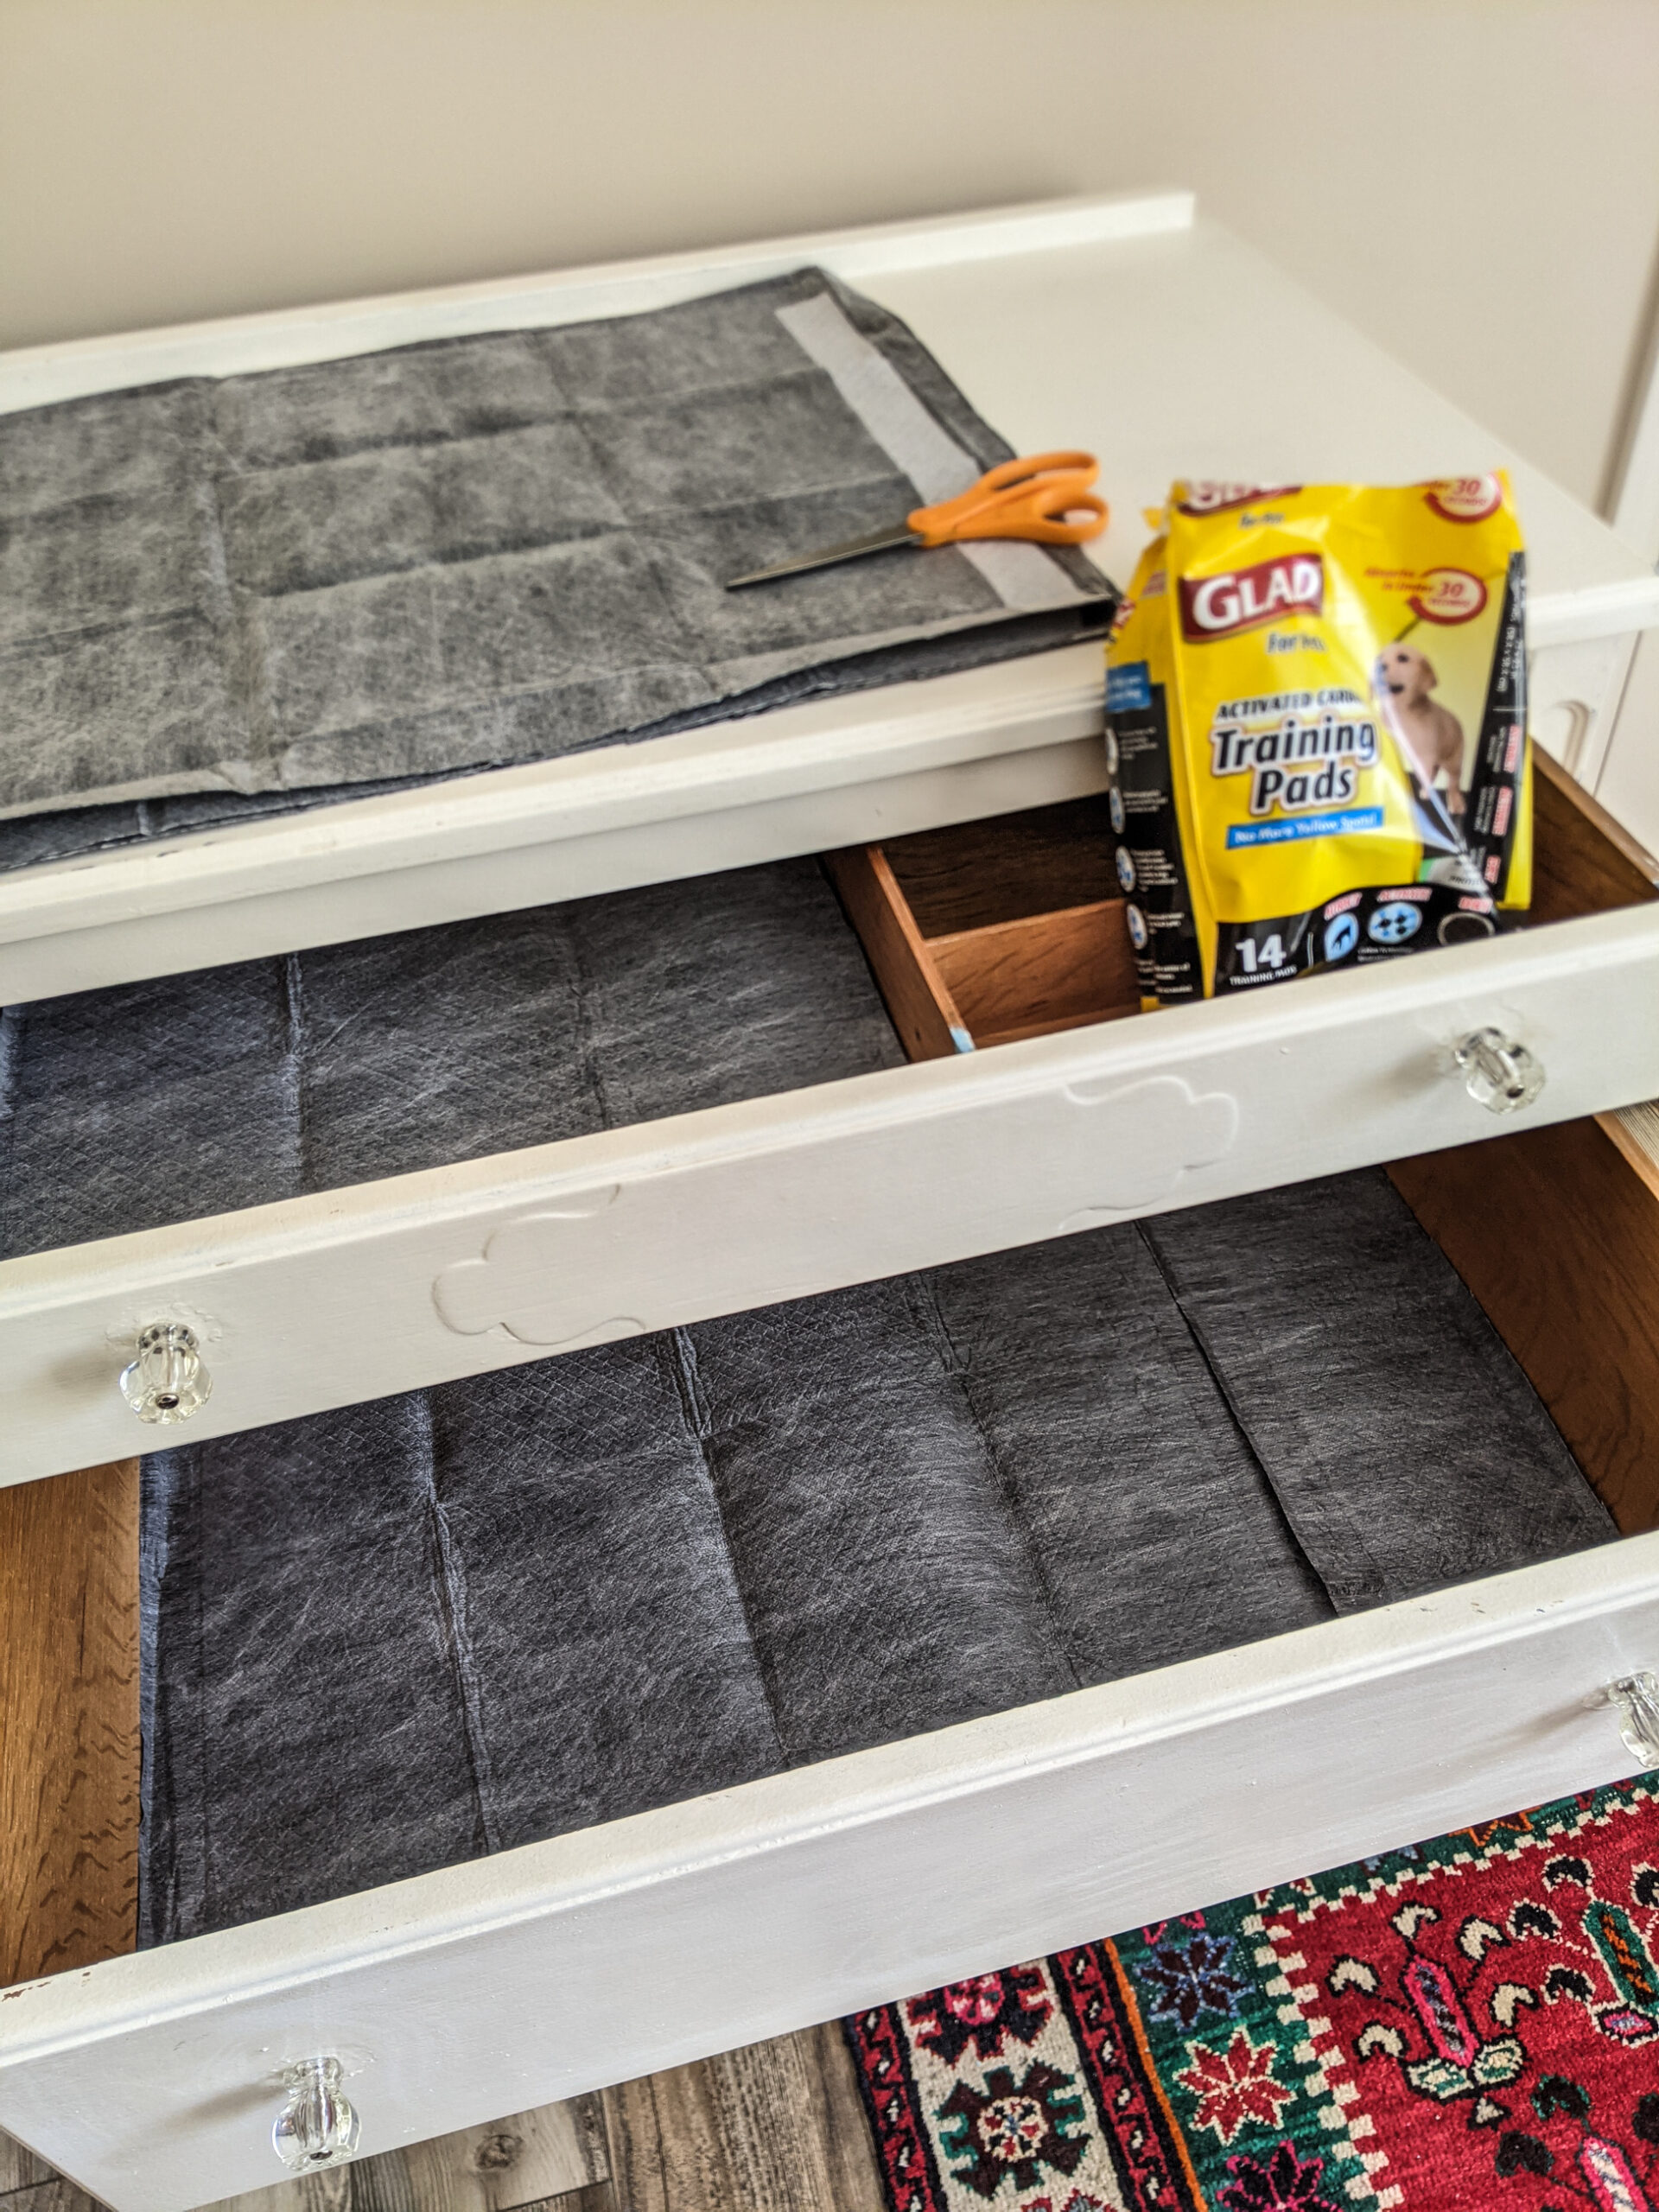 Wood dresser drawers lined with activated charcoal puppy pads.